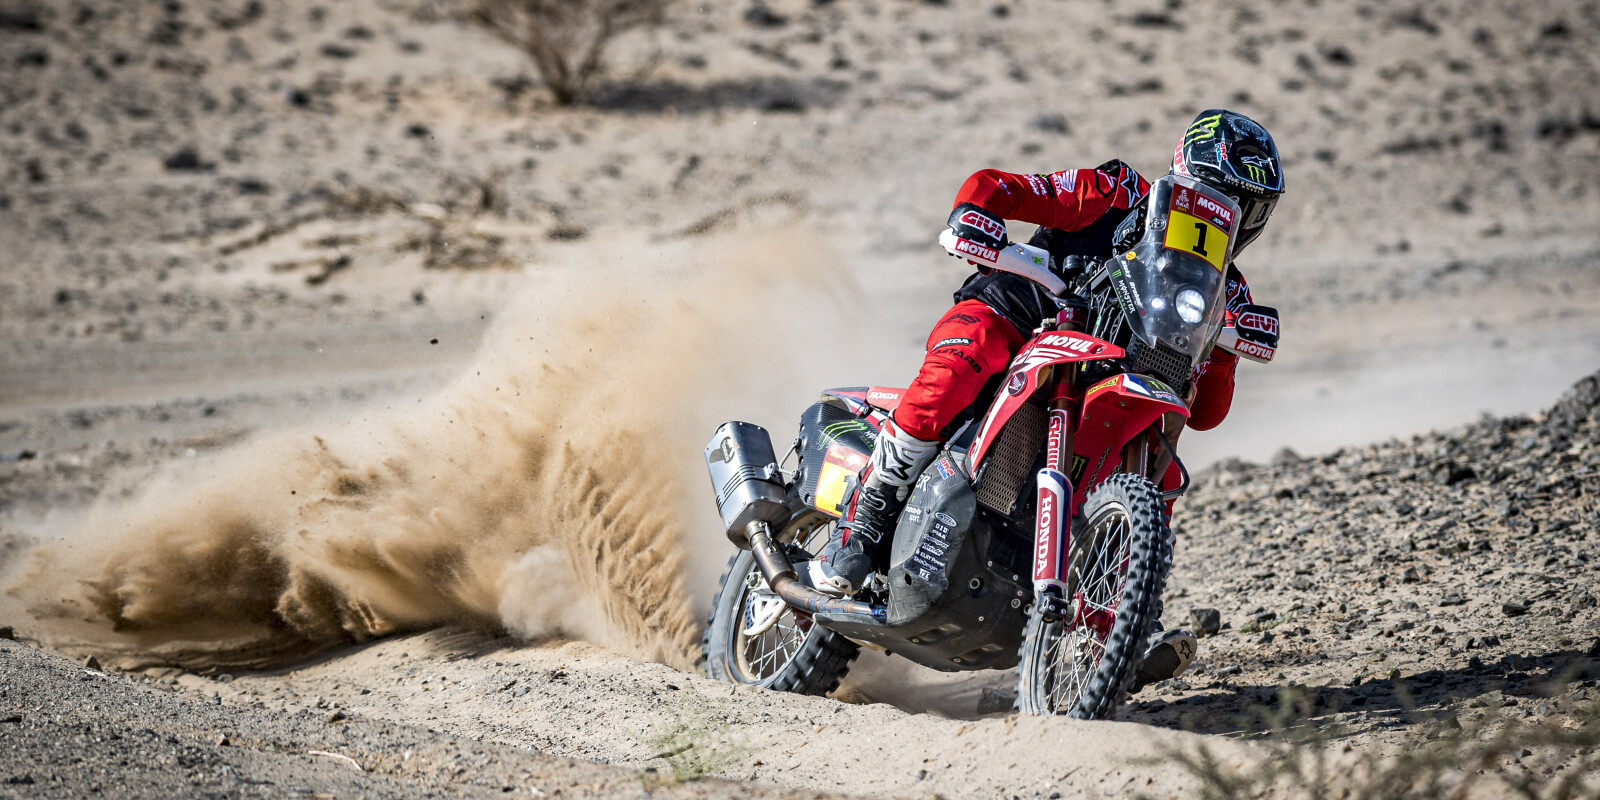 Images from day four / stage 4 at the 2021 Dakar Rally in Saudi Arabia